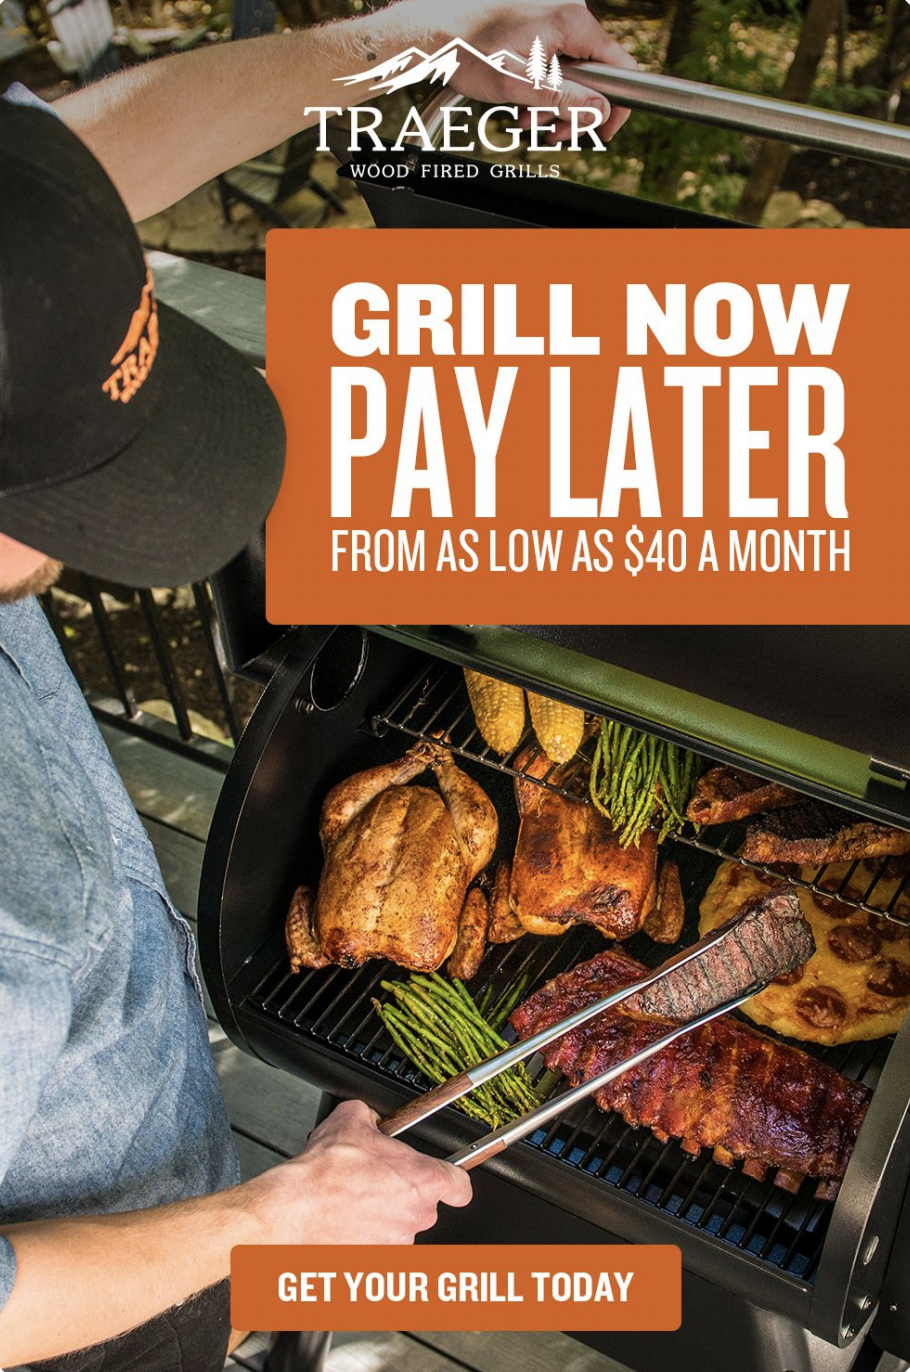 Shop Traeger Grills in 2020 | Traeger grill, Grilling ...